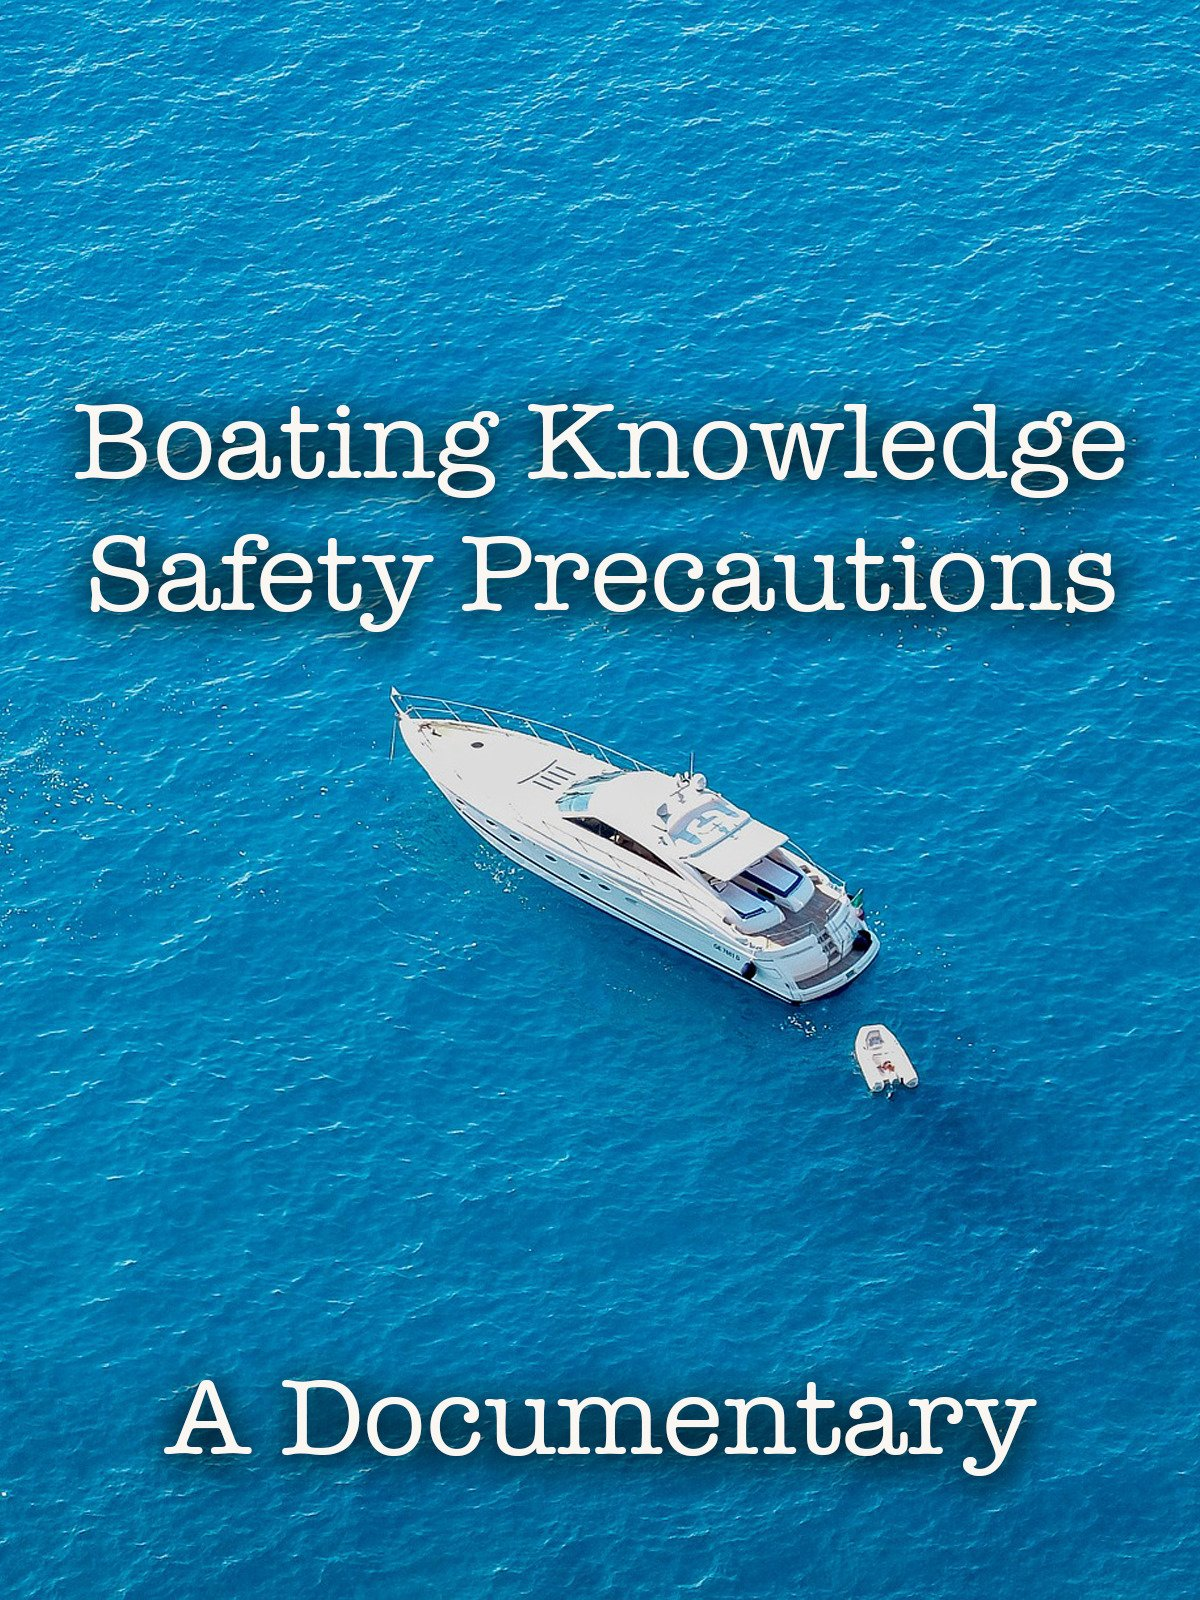 Boating Knowledge Safety Precautions